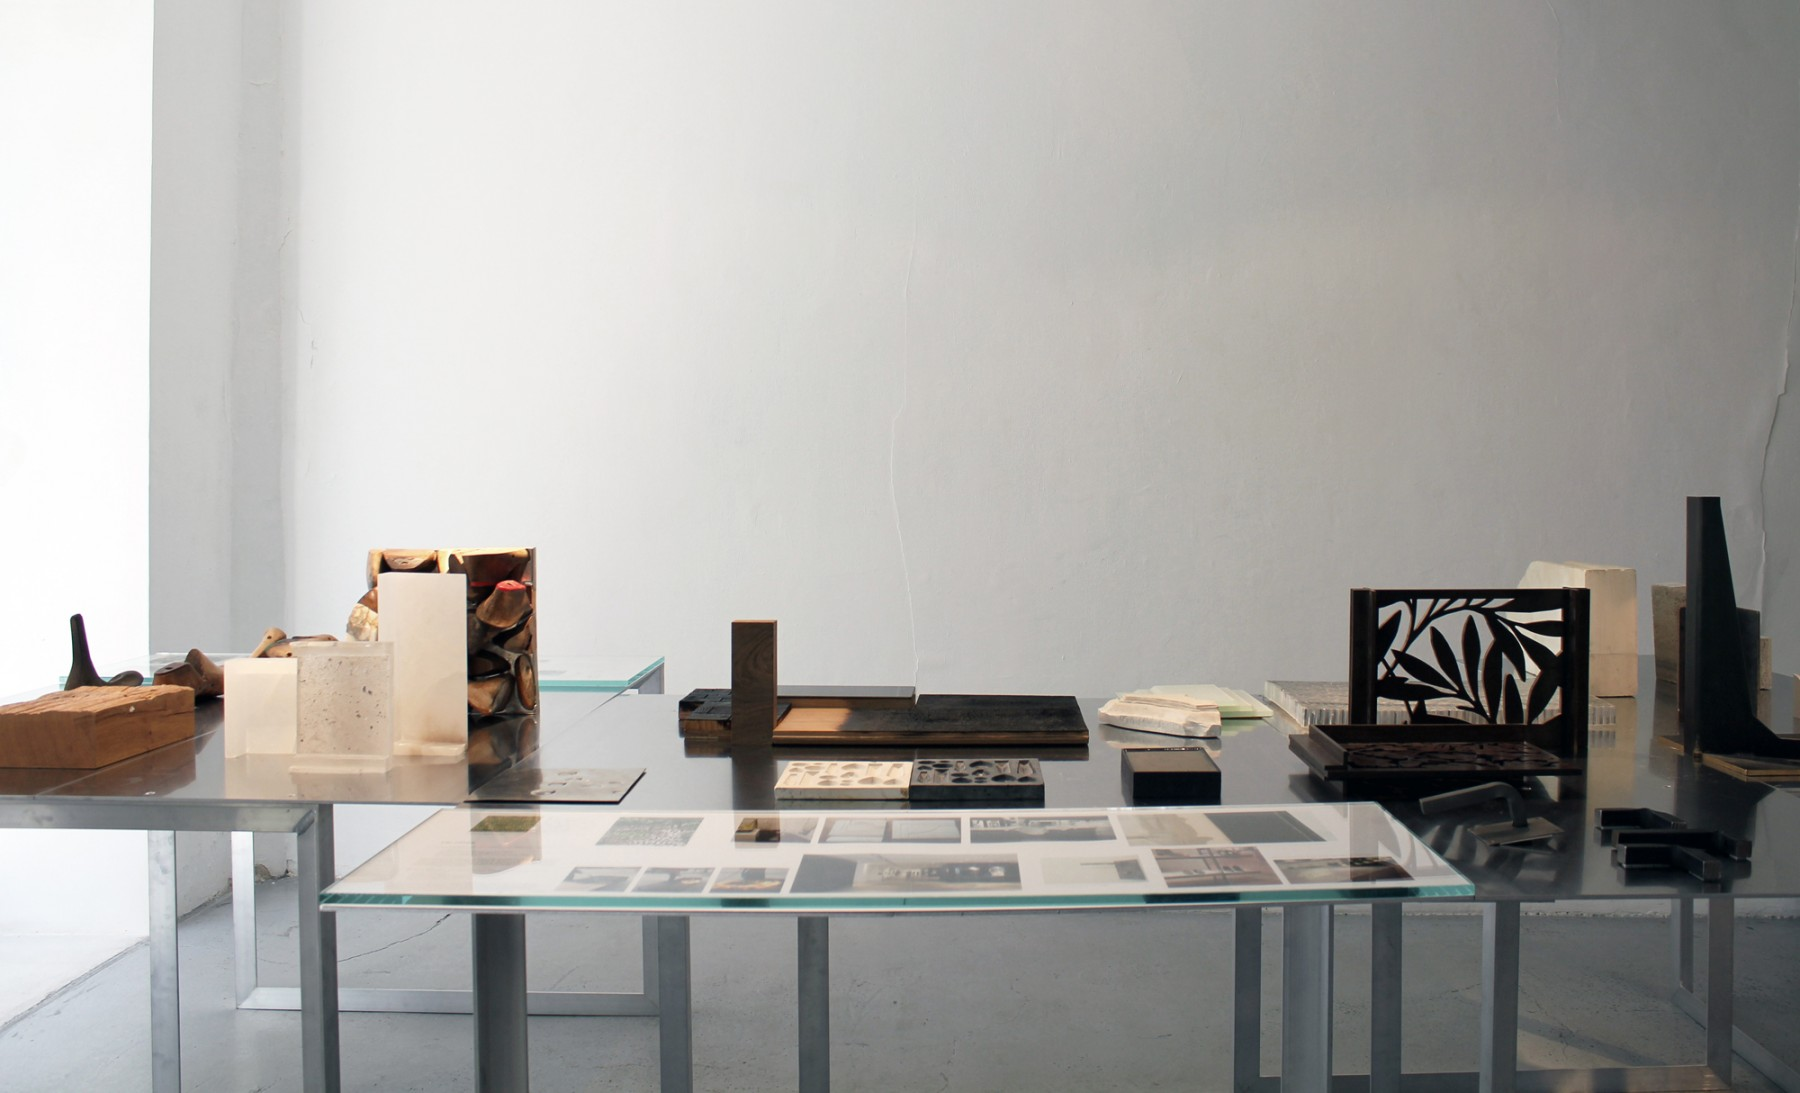 JFA- Working-in-Architecture- Paris-exhibition- material tests